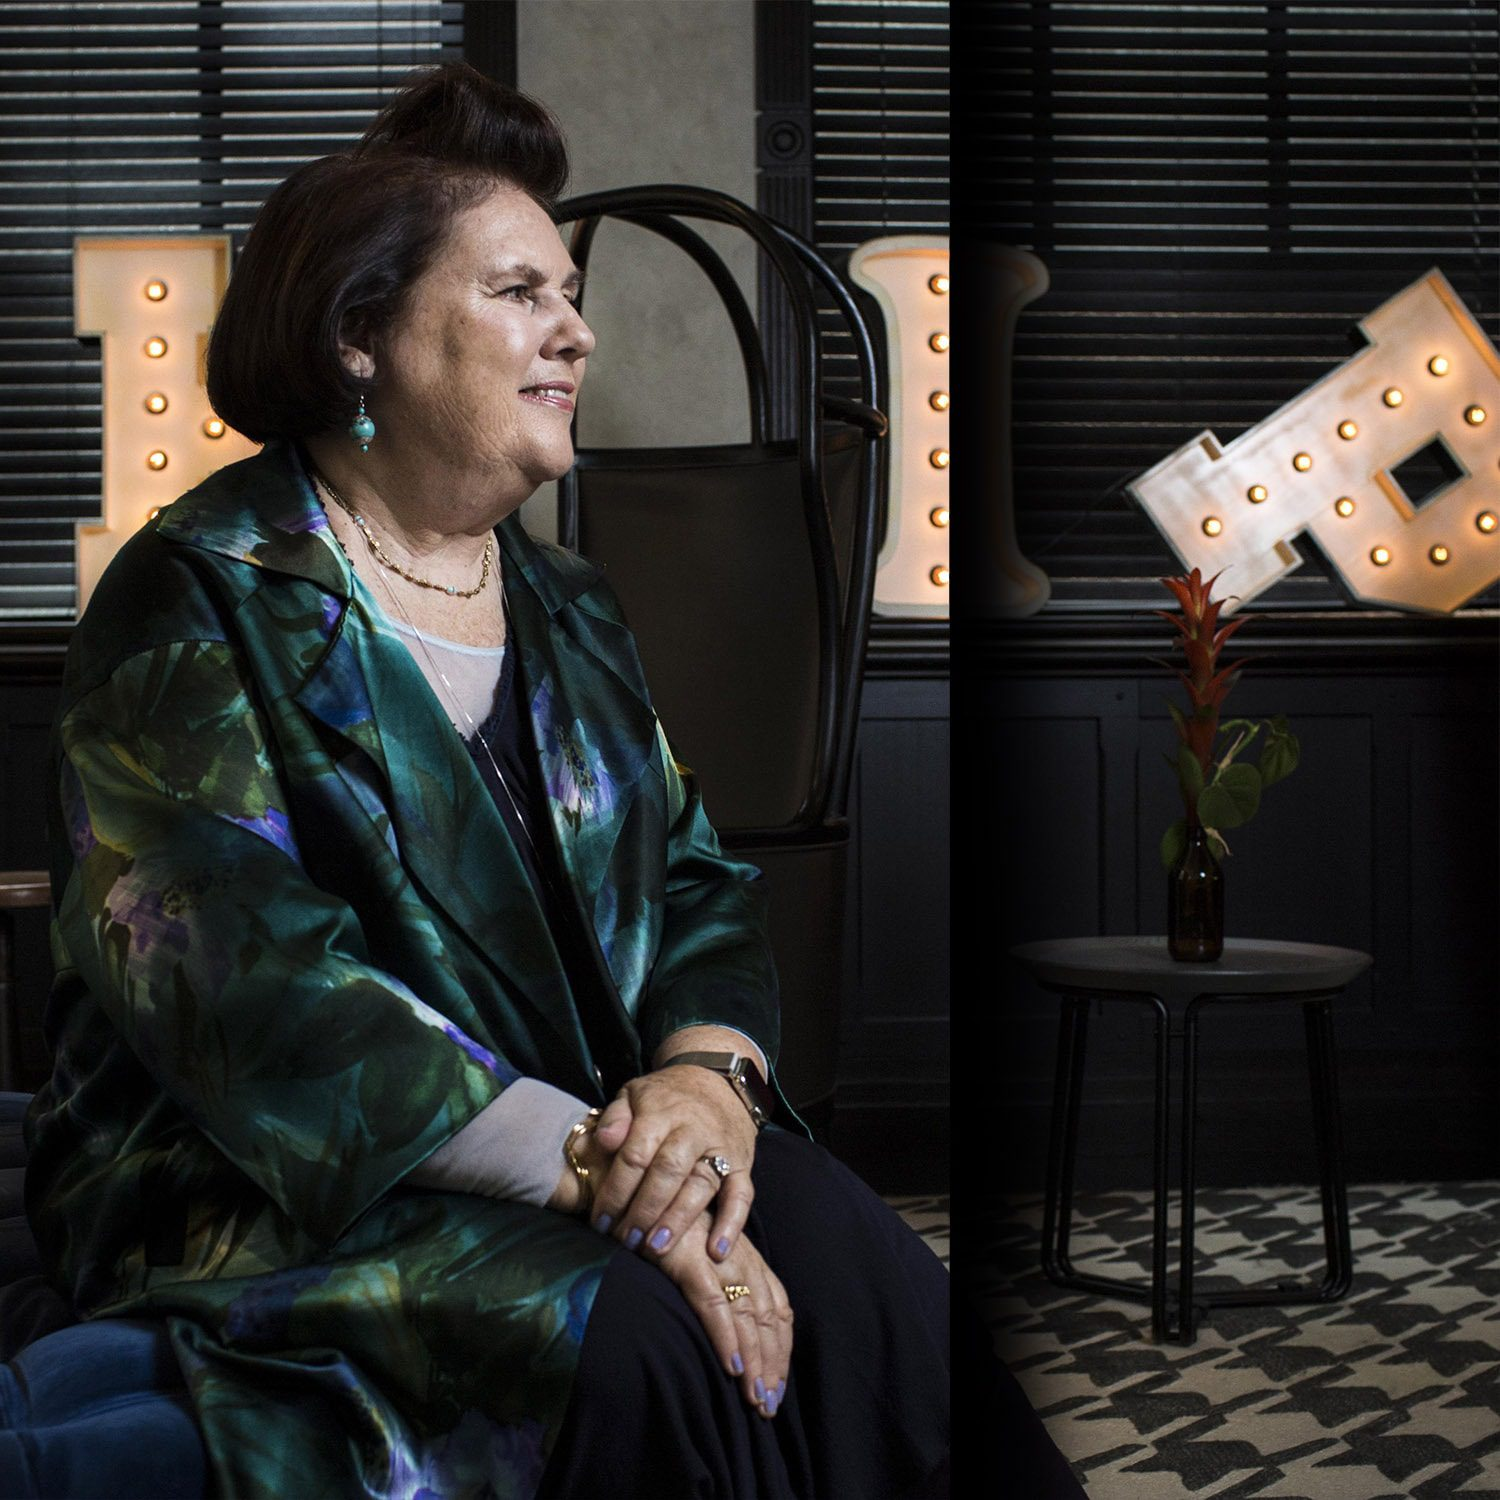 Suzy Menkes leaves VOGUE